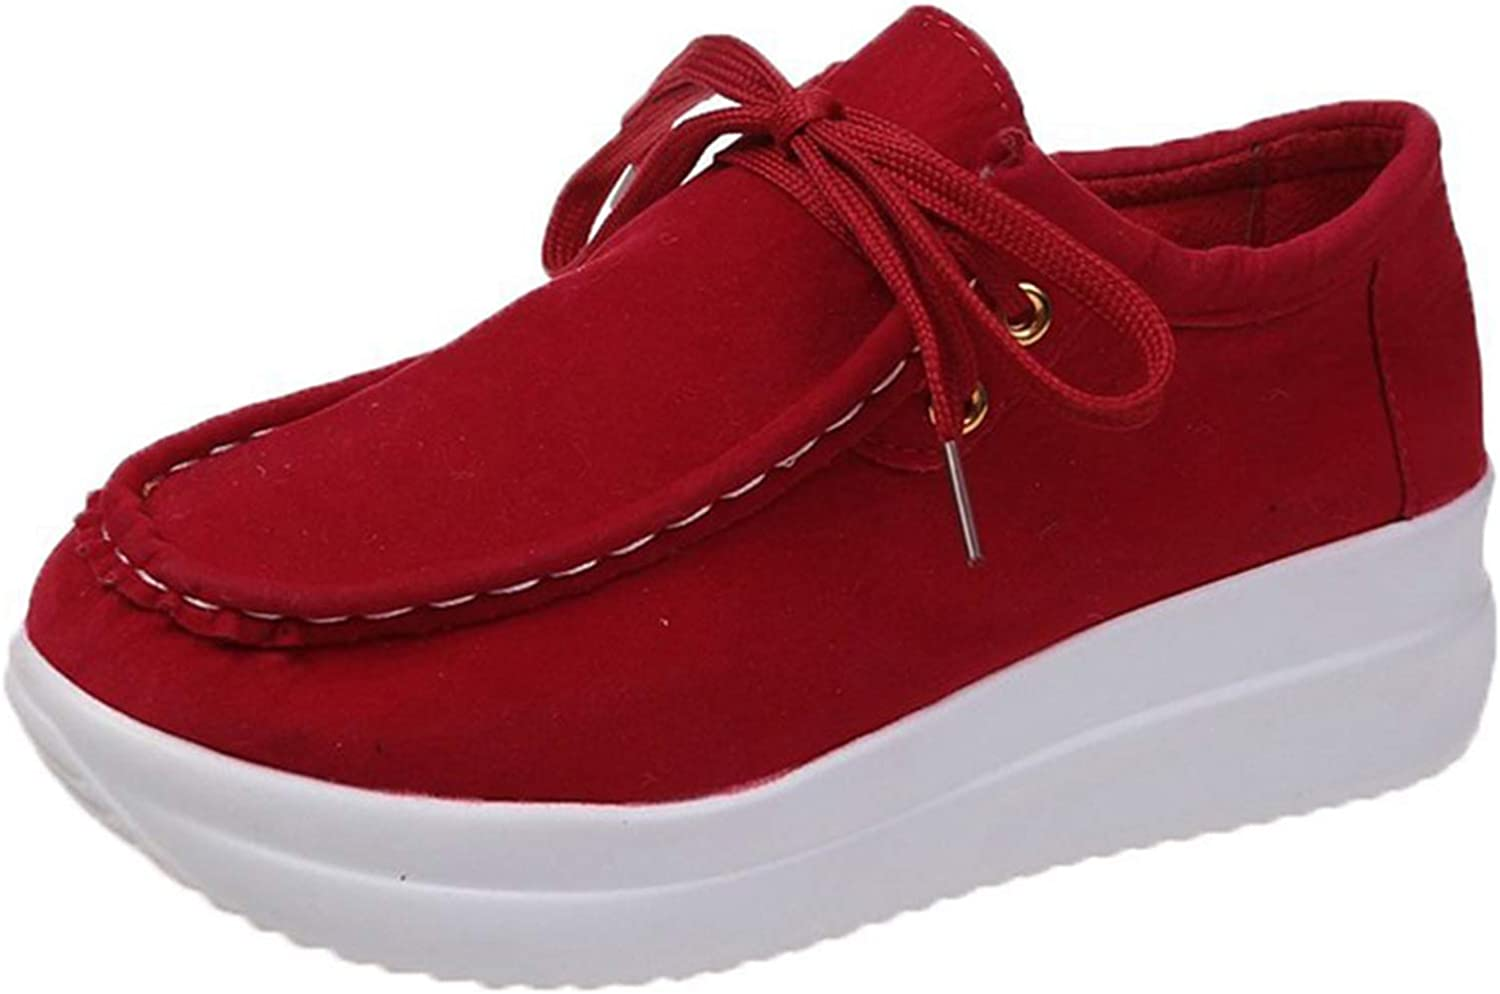 Erocalli Casual Lace up Loafers Shoes Platform Fashion Sneakers for Women Comfortable Walking Shoes Spring Tennis Shoes Red